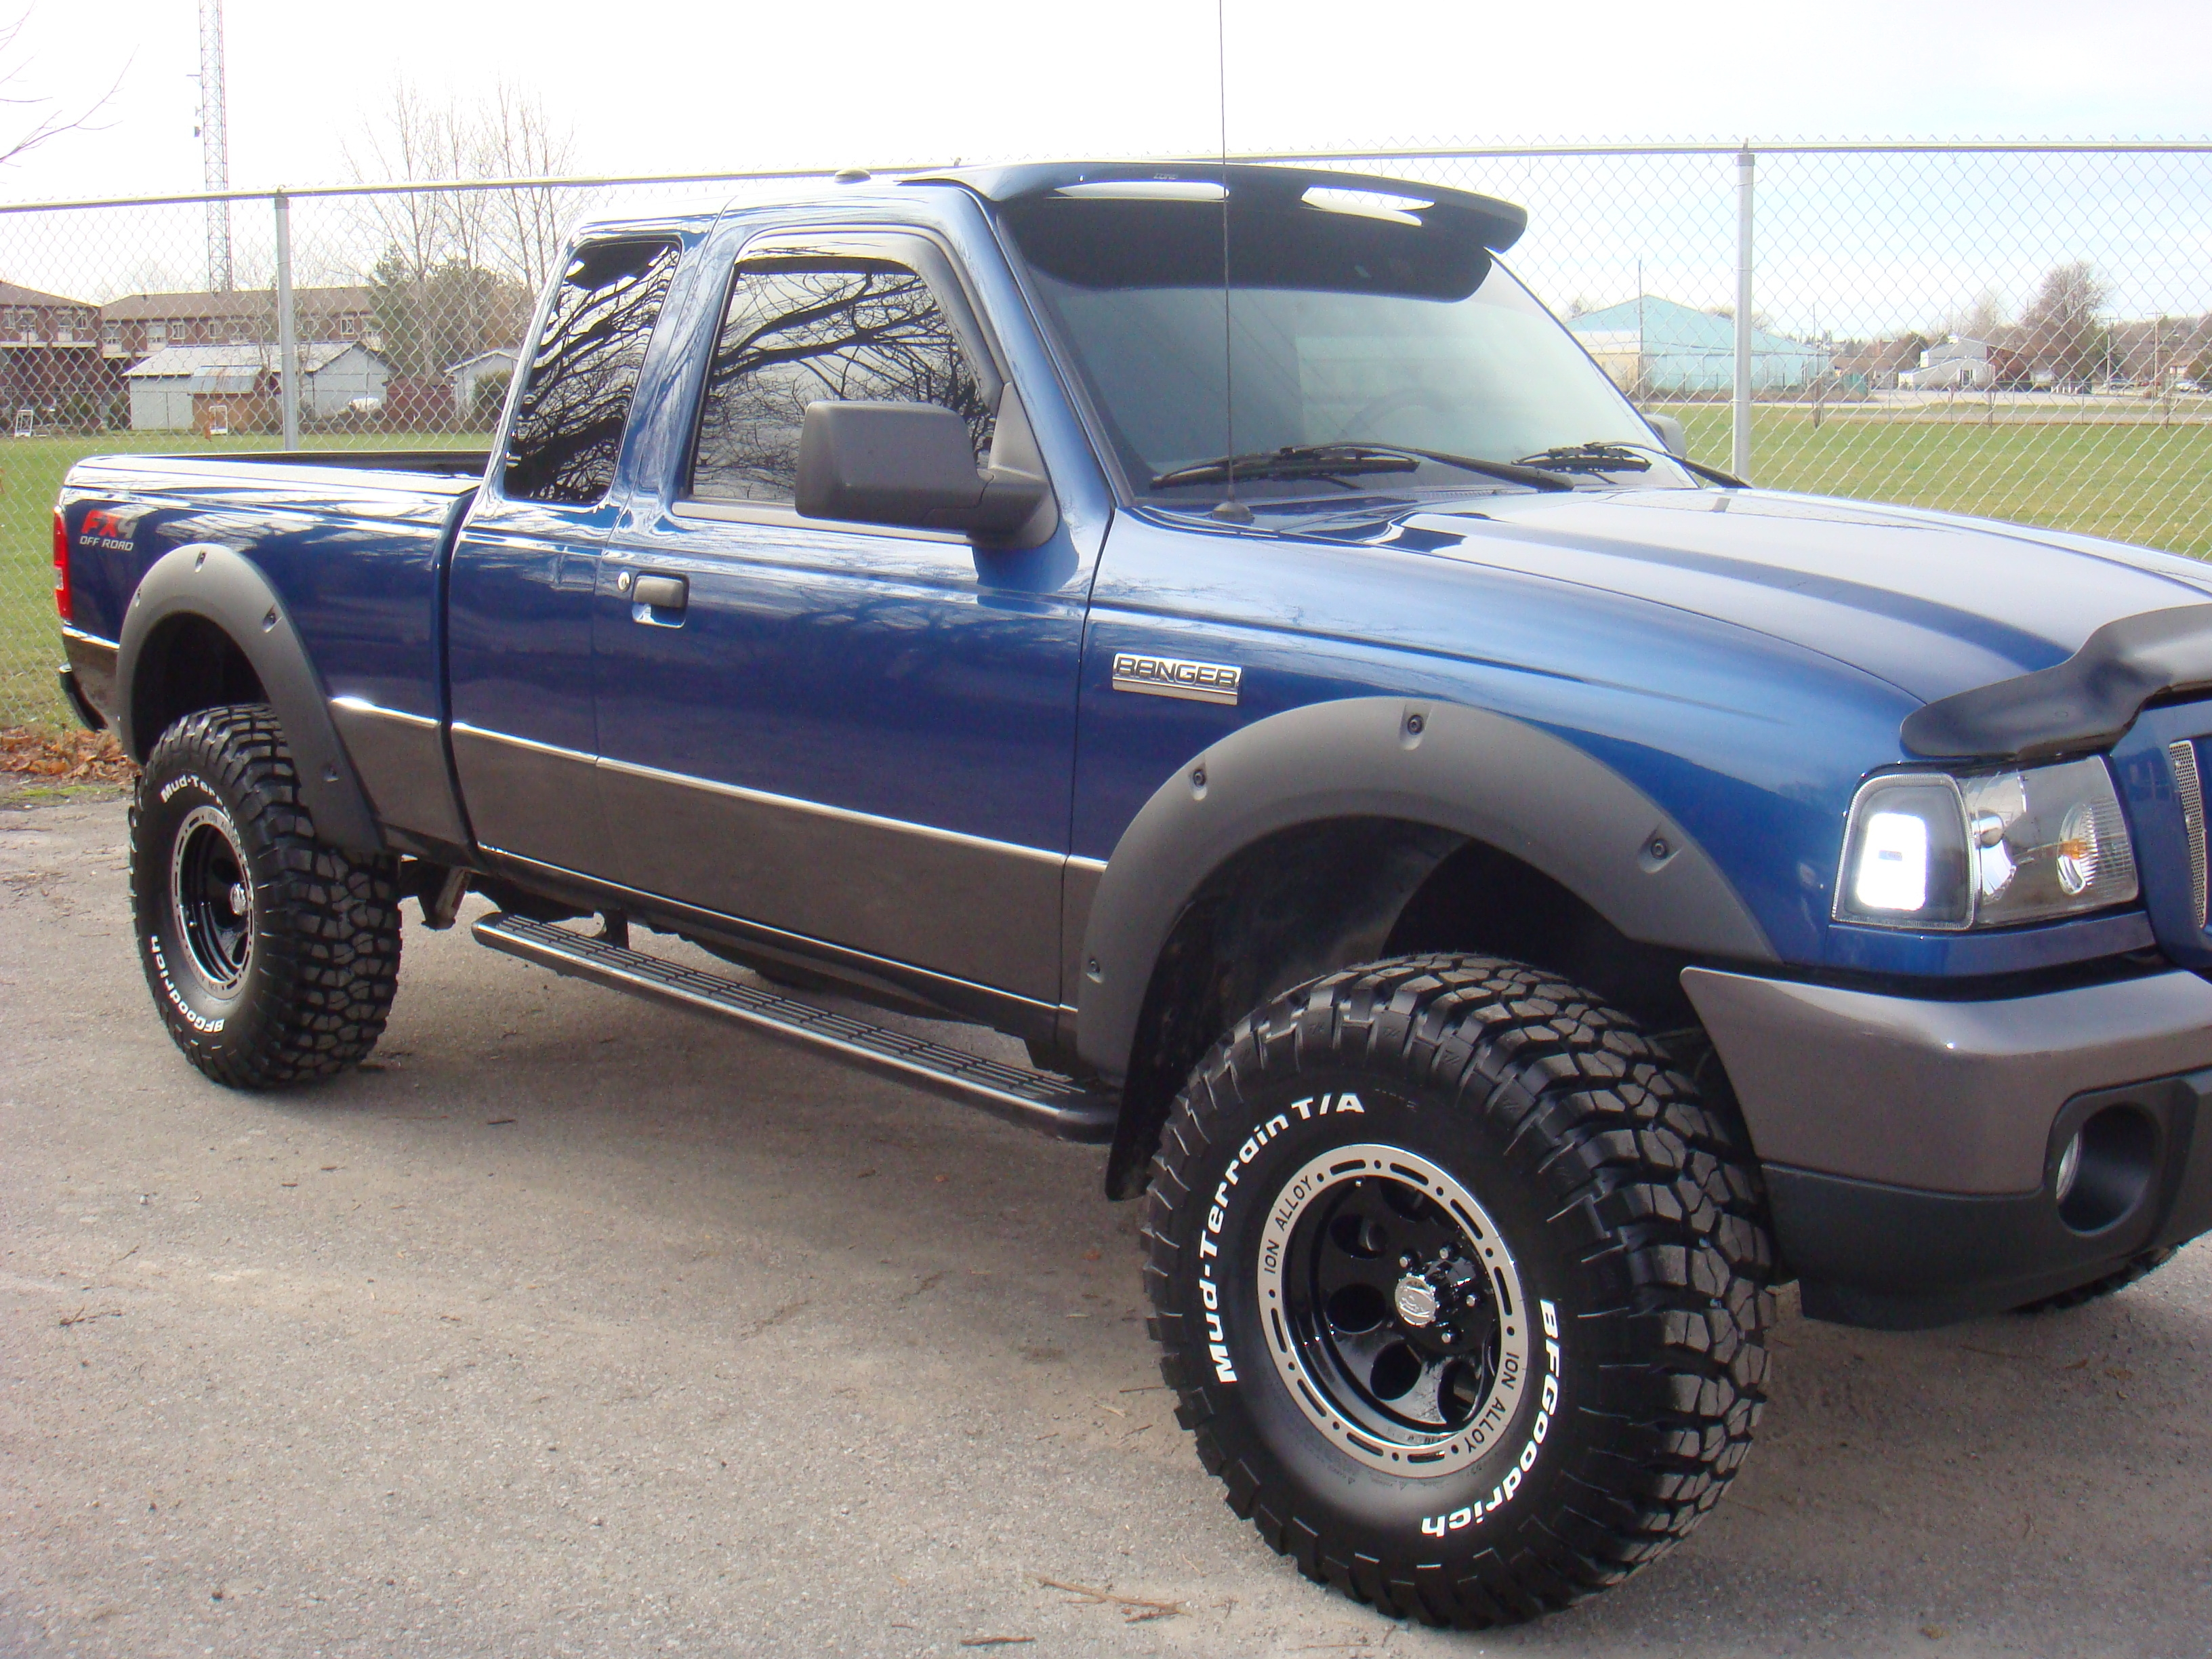 billy4x4 2008 ford ranger regular cab 30346490010_original - Lifted 2008 Ford Ranger